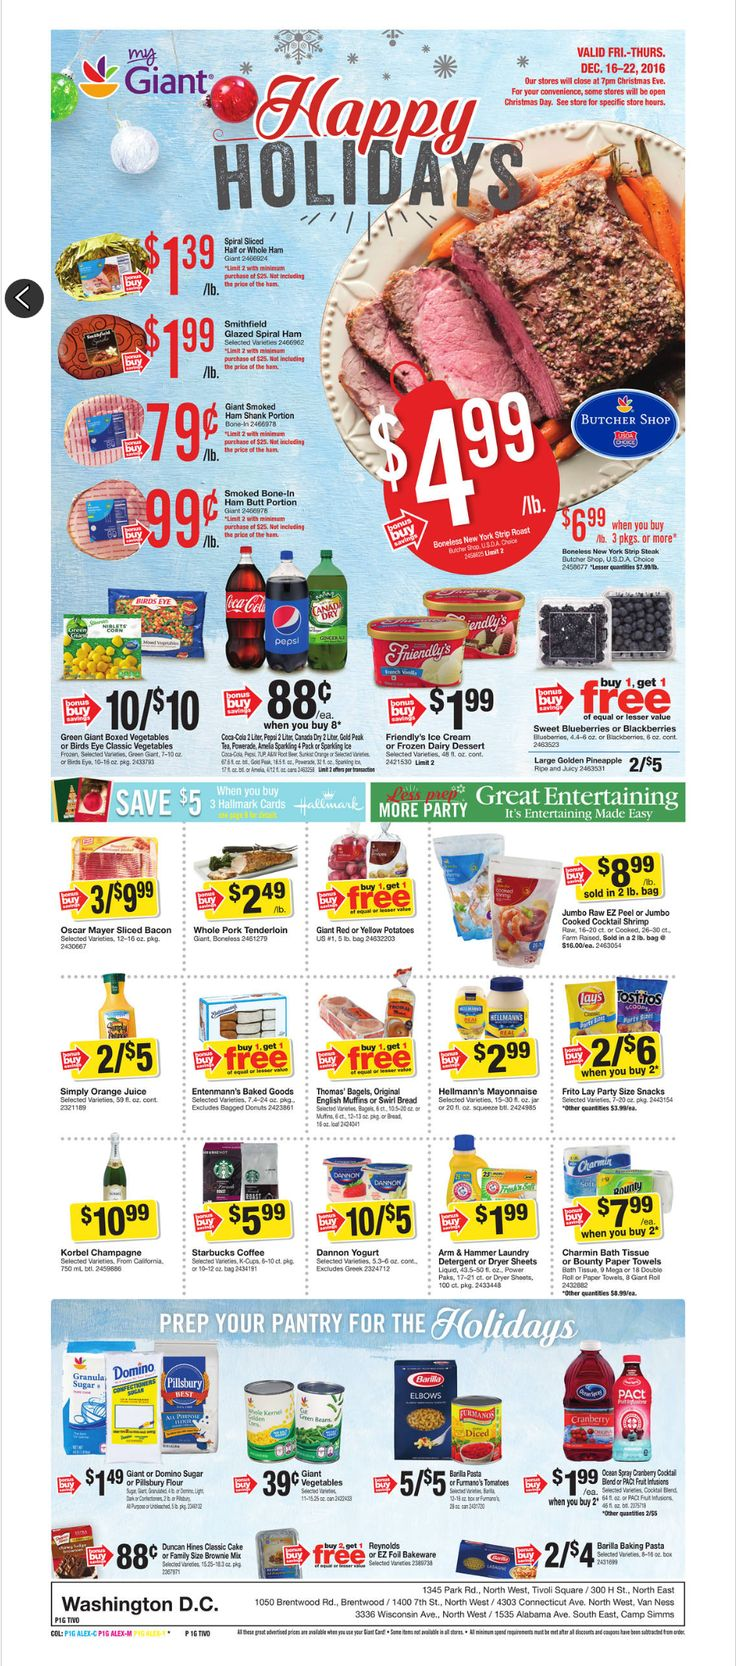 Giant Food Weekly Ad December 16 - 22, 2016 - http://www.olcatalog.com/grocery/giant-food-weekly-ad.html